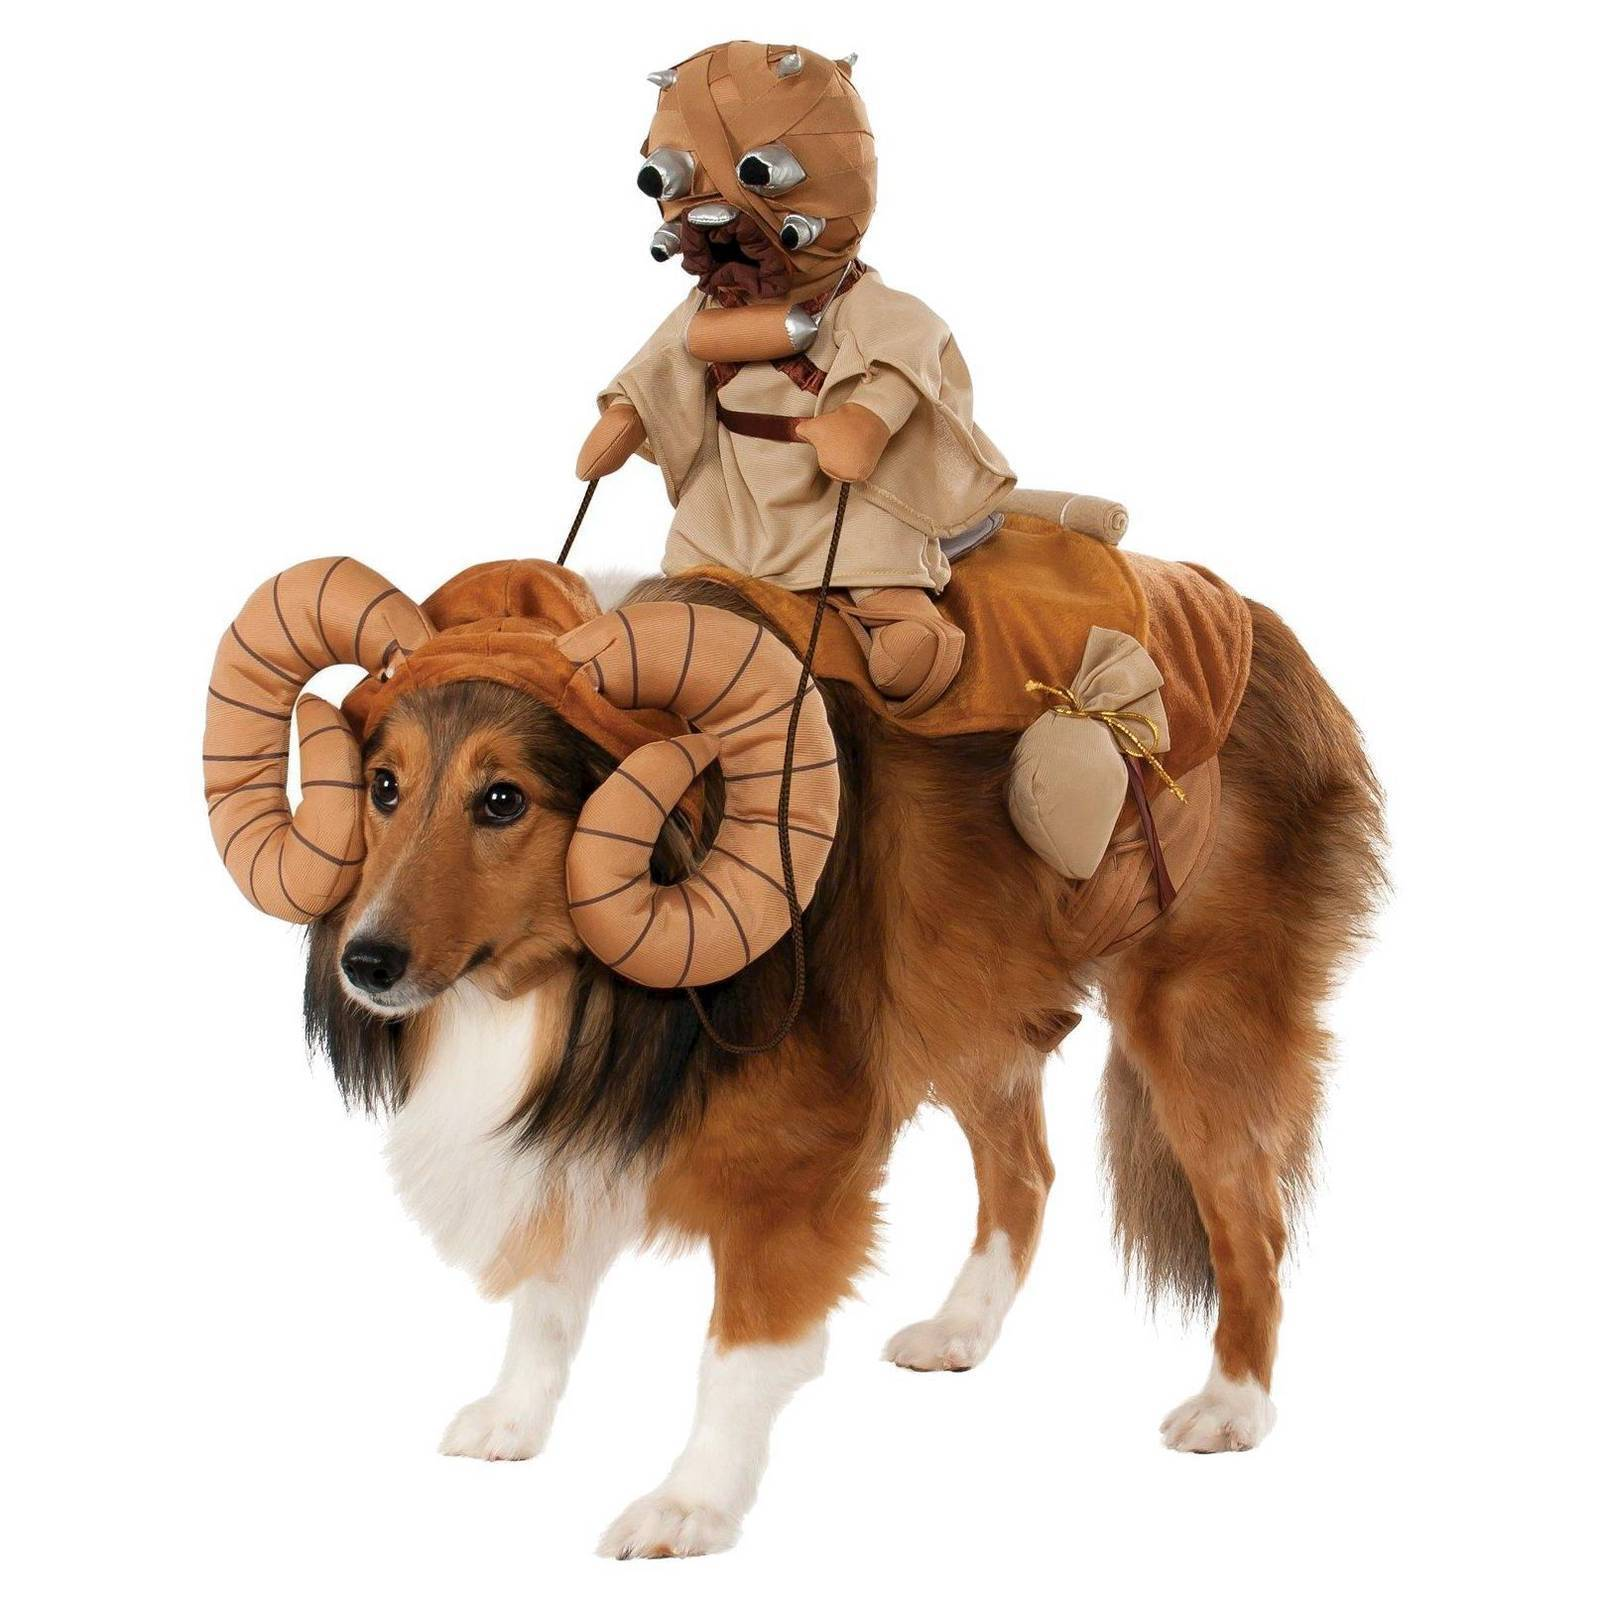 star wars costumes for dogs for sale | ebay